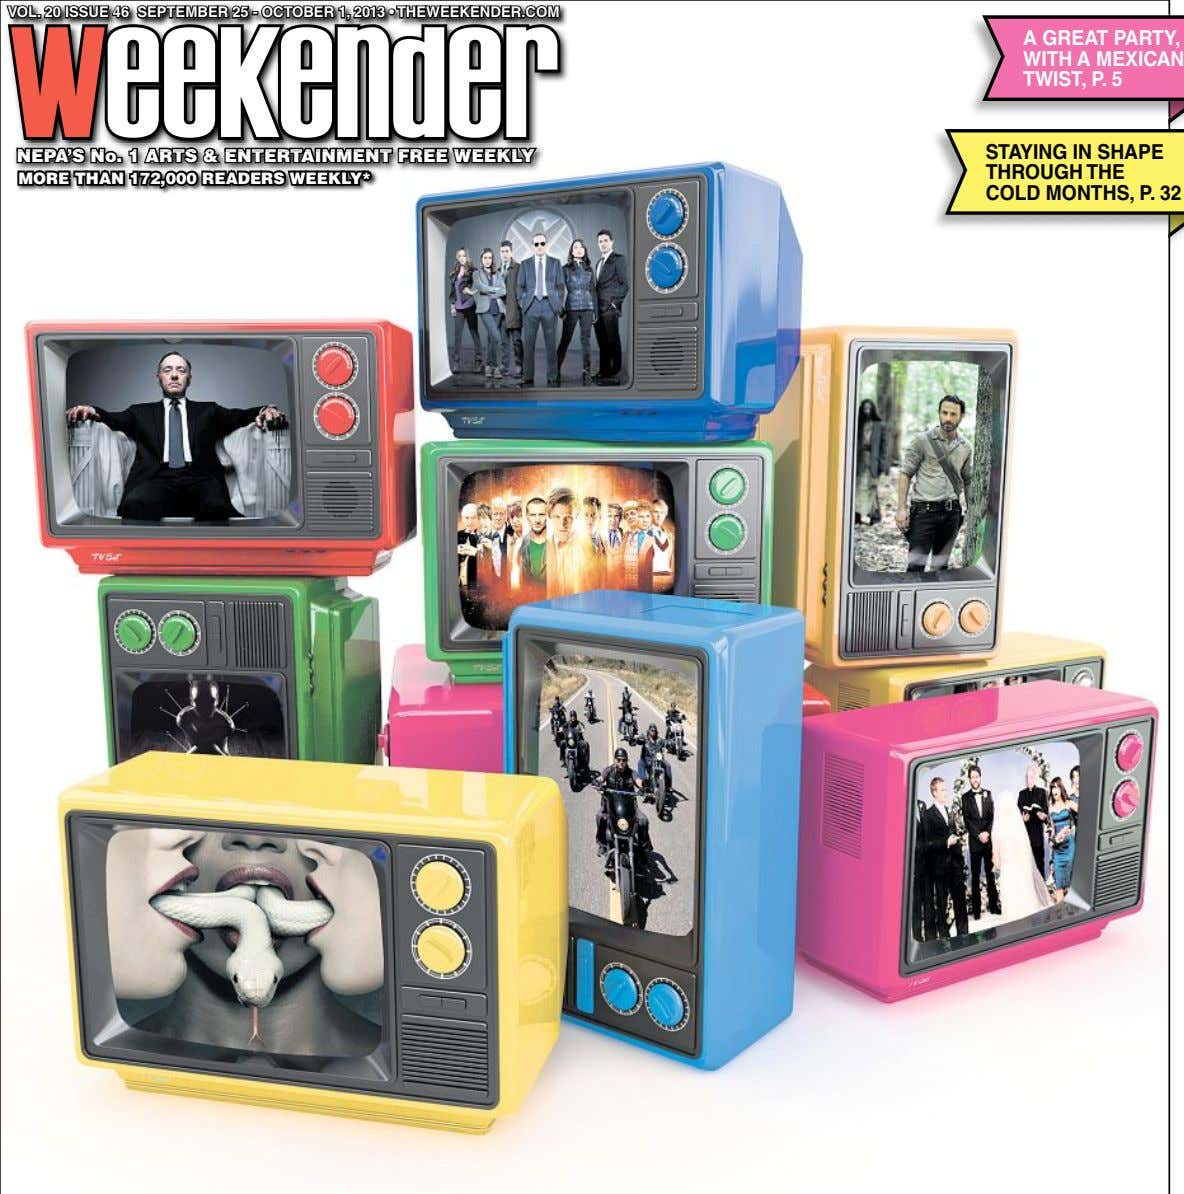 VOL. 20 ISSUE 46 SEPTEMBER 25 - OCTOBER 1, 2013 • THEWEEKENDER.COM weekender A GREAT